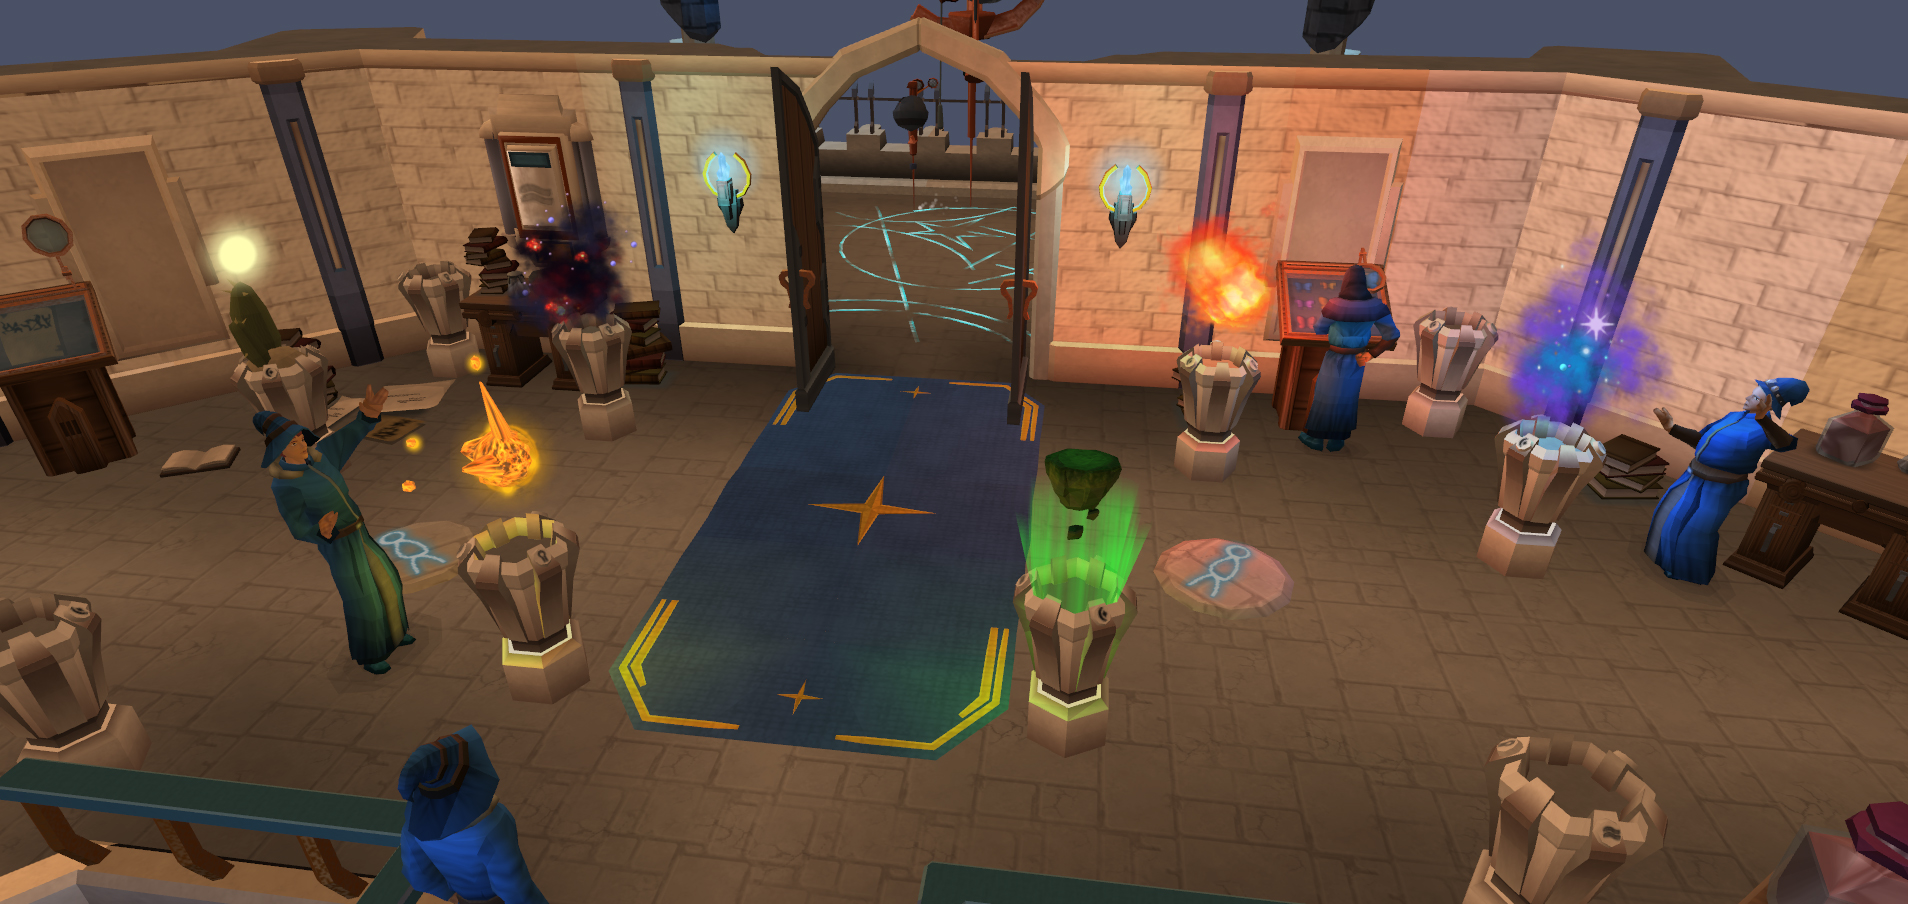 RuneScape teaser image #1 for week beginning Nov 26, 2012